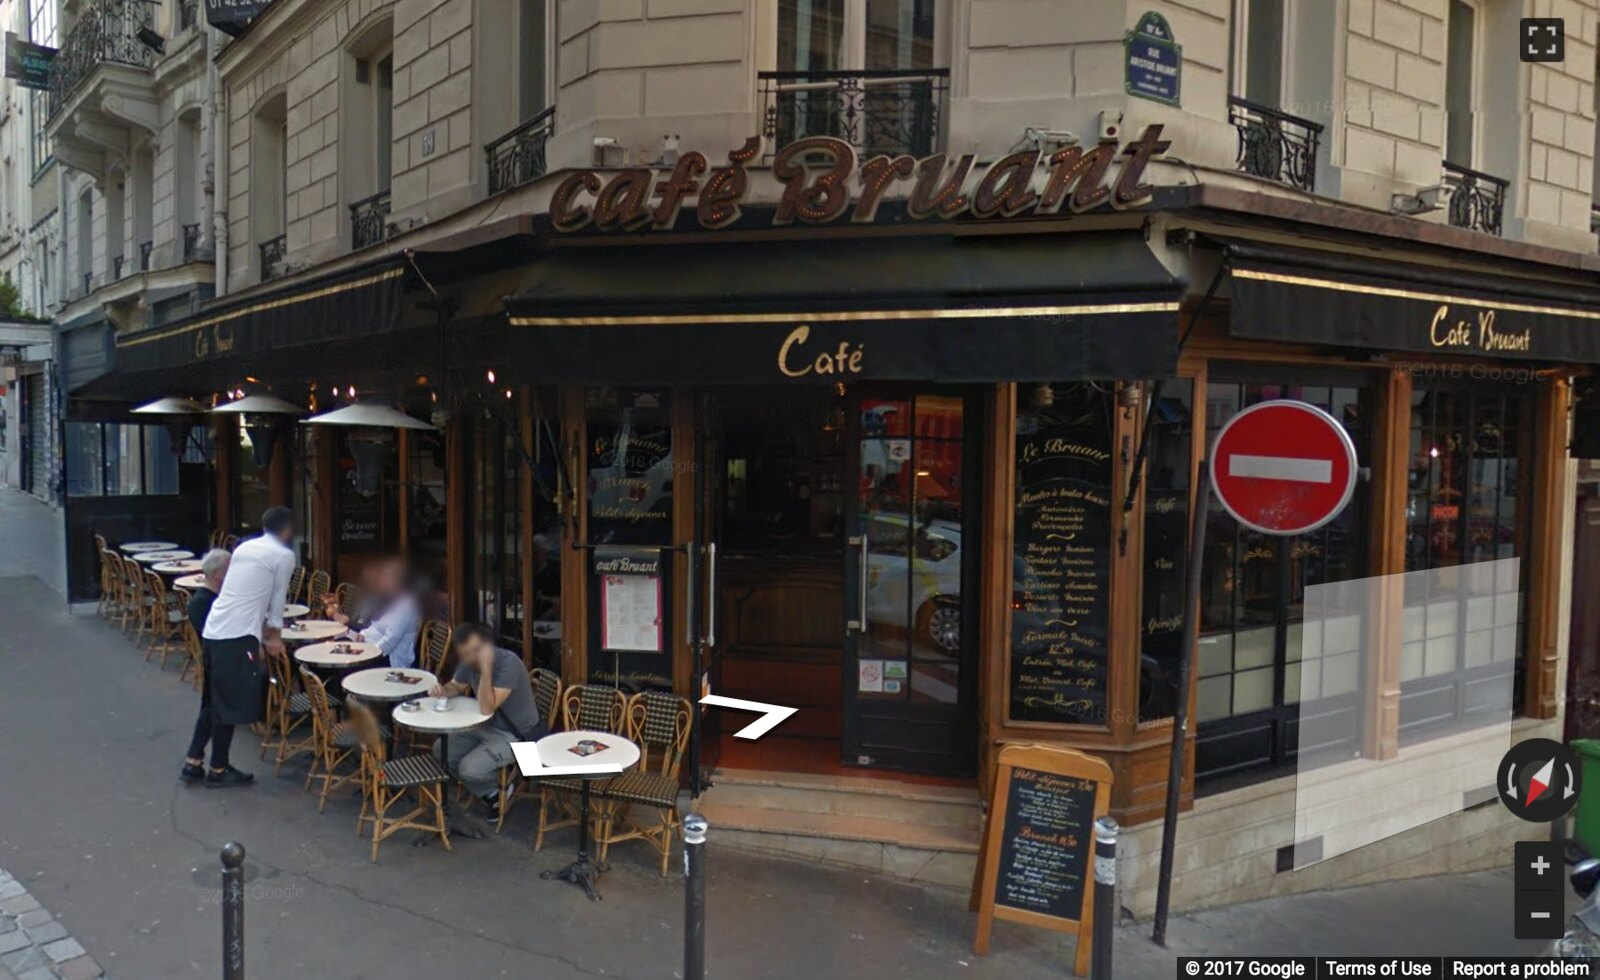 Google Street View of Cafe Bruant